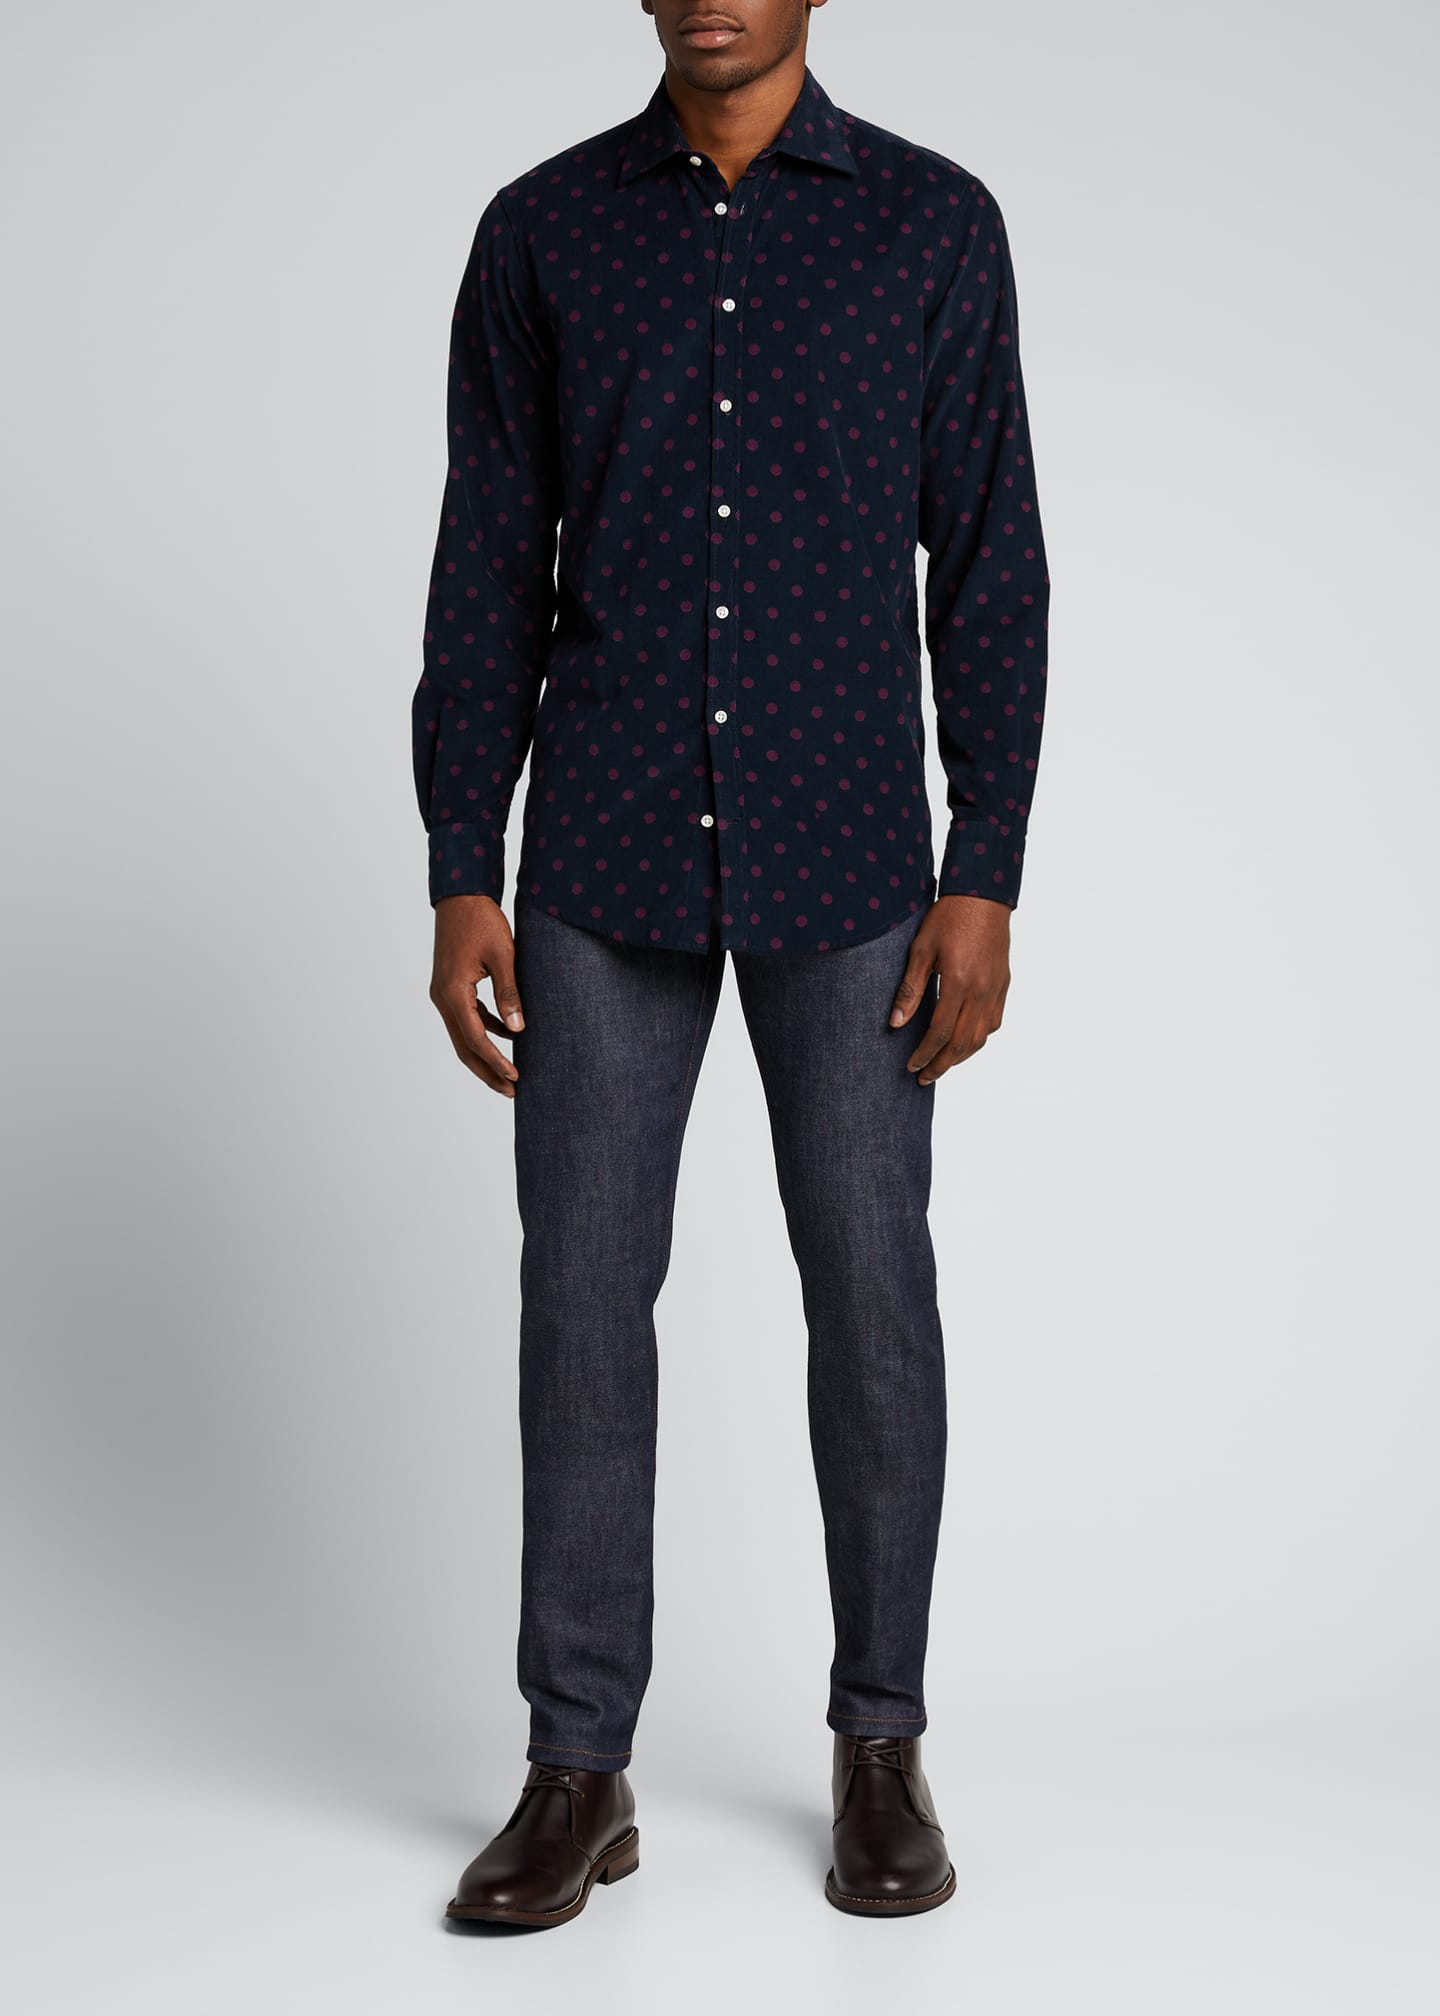 Image 1 of 5: Men's Genova Baby Corduroy Polka-Dot Shirt